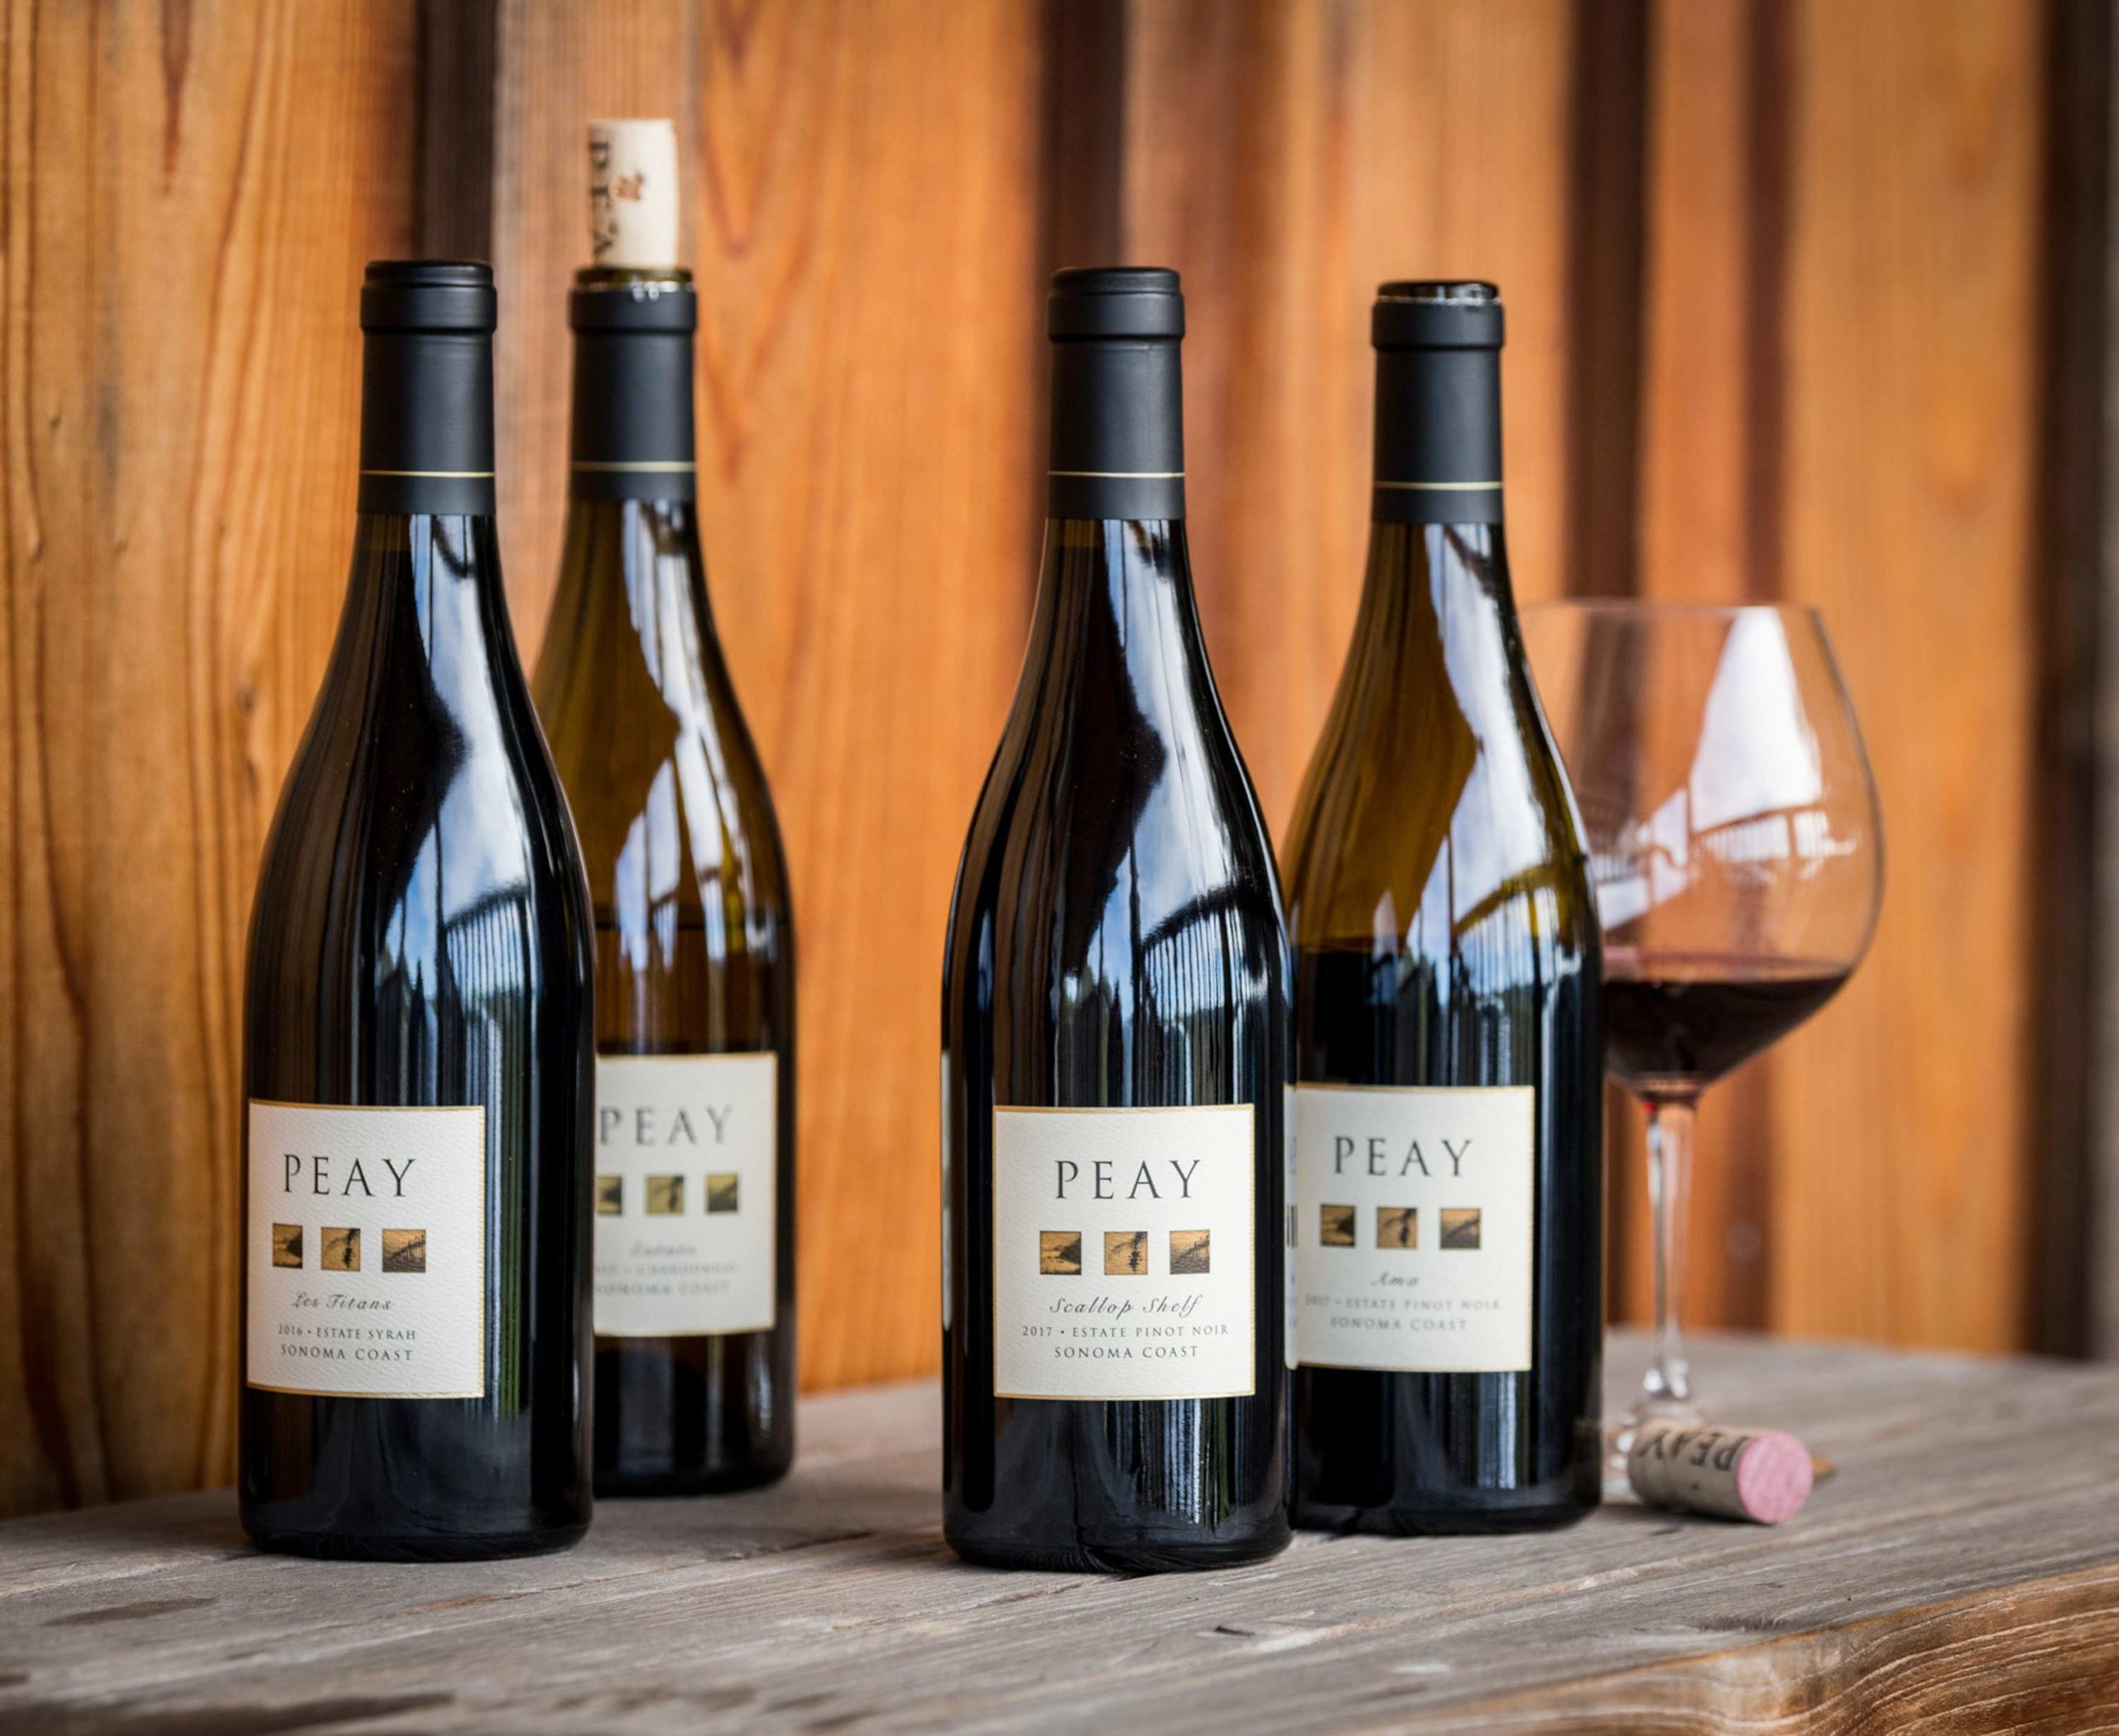 Featured image for Article: 2008 Peay Vineyards Estate Chardonnay, Sonoma Coast